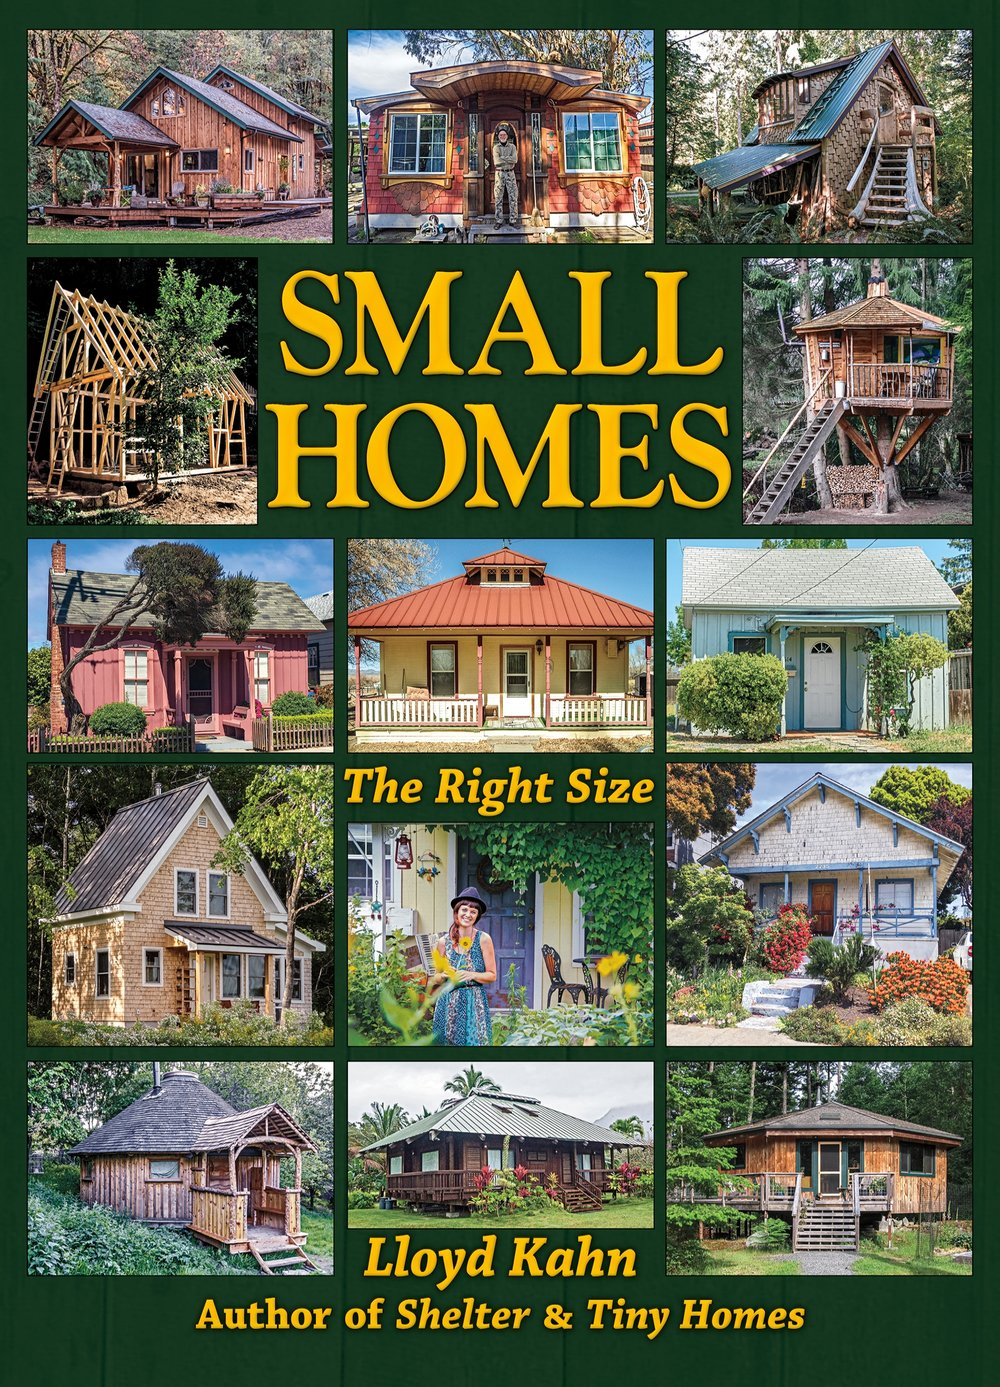 Shelter's first building book in three years will be available by April 1. It covers homes from 400-1200 sq. ft., smaller than a typical American home, and larger then a tiny home — just right! There are 65 buildings shown, with a variety of designs, materials, and locations.